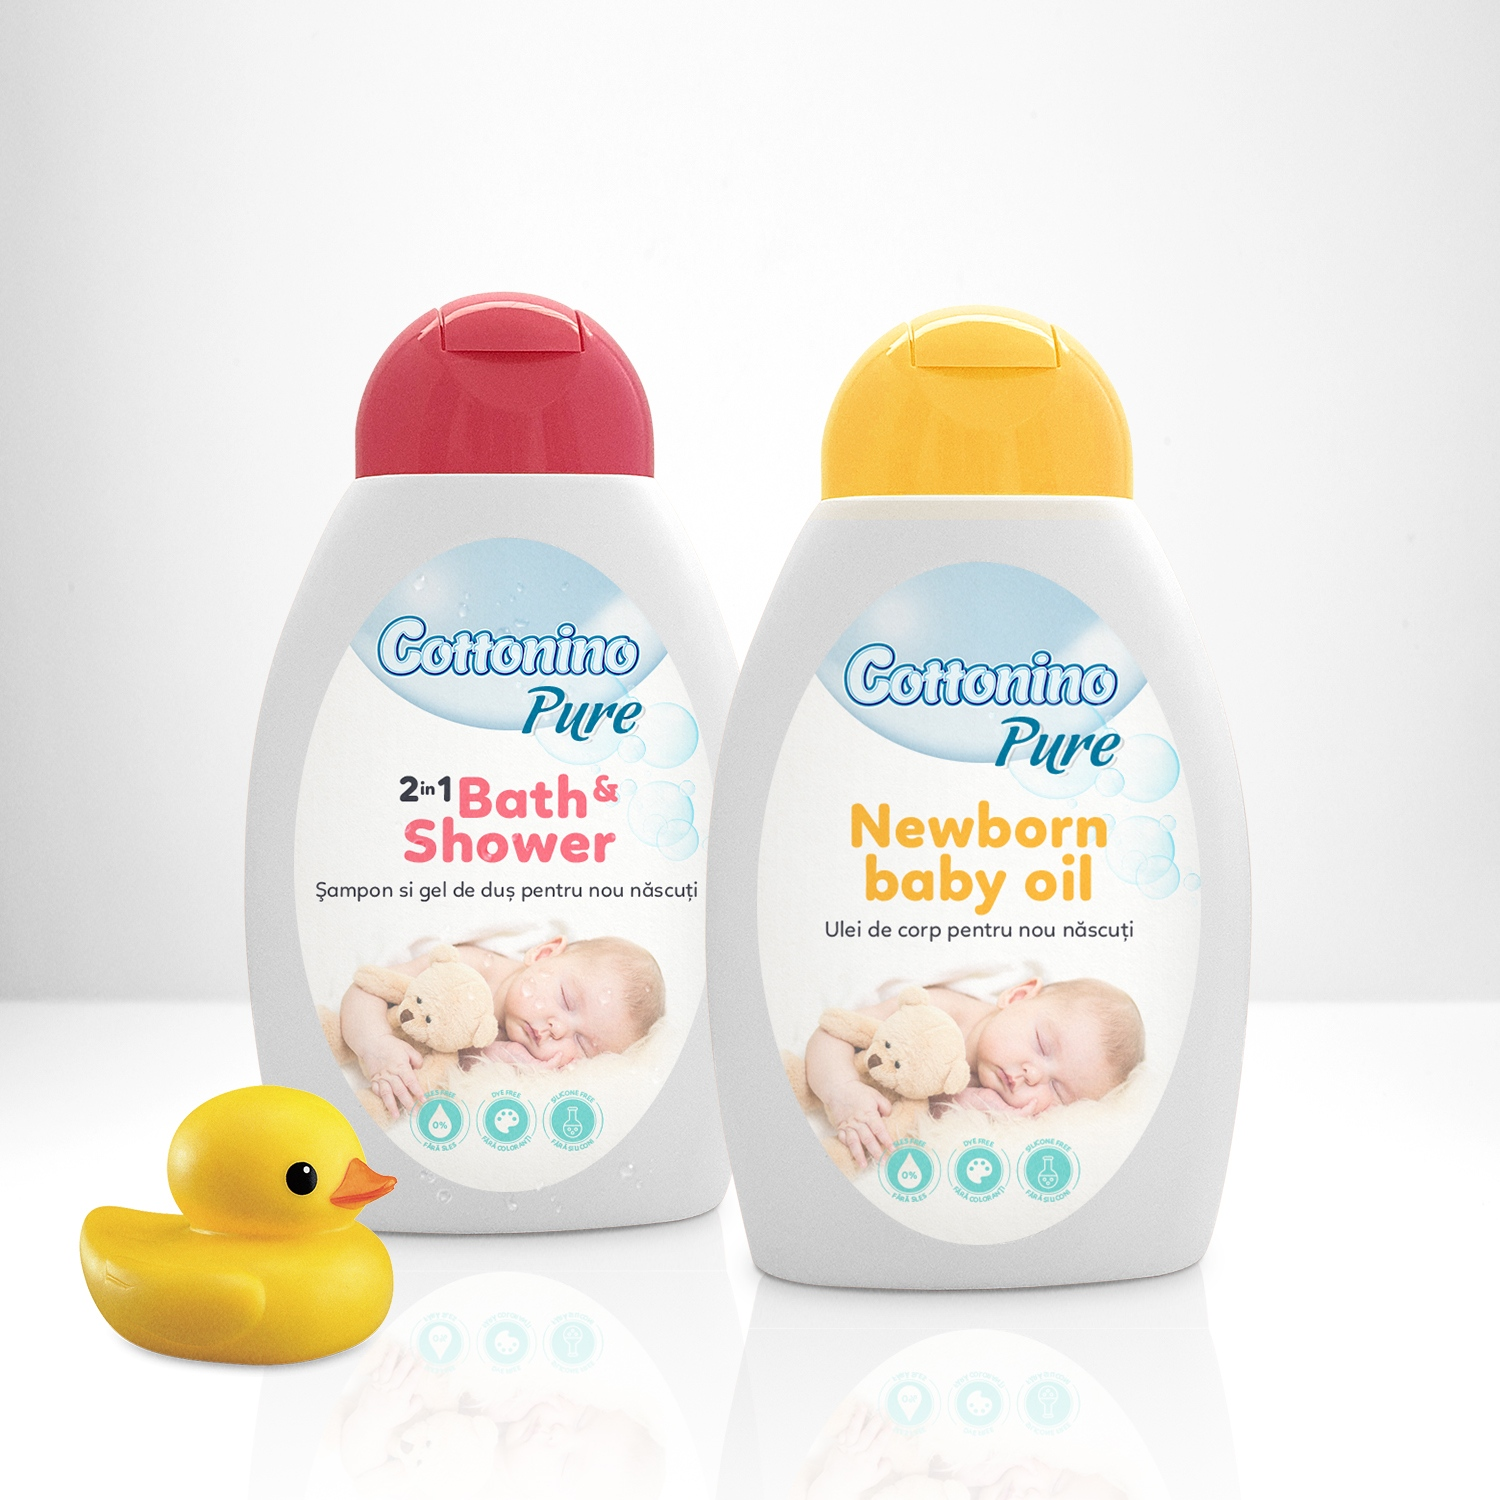 Cottonino Pure Bath shower and newborn baby oil branding and packaging design